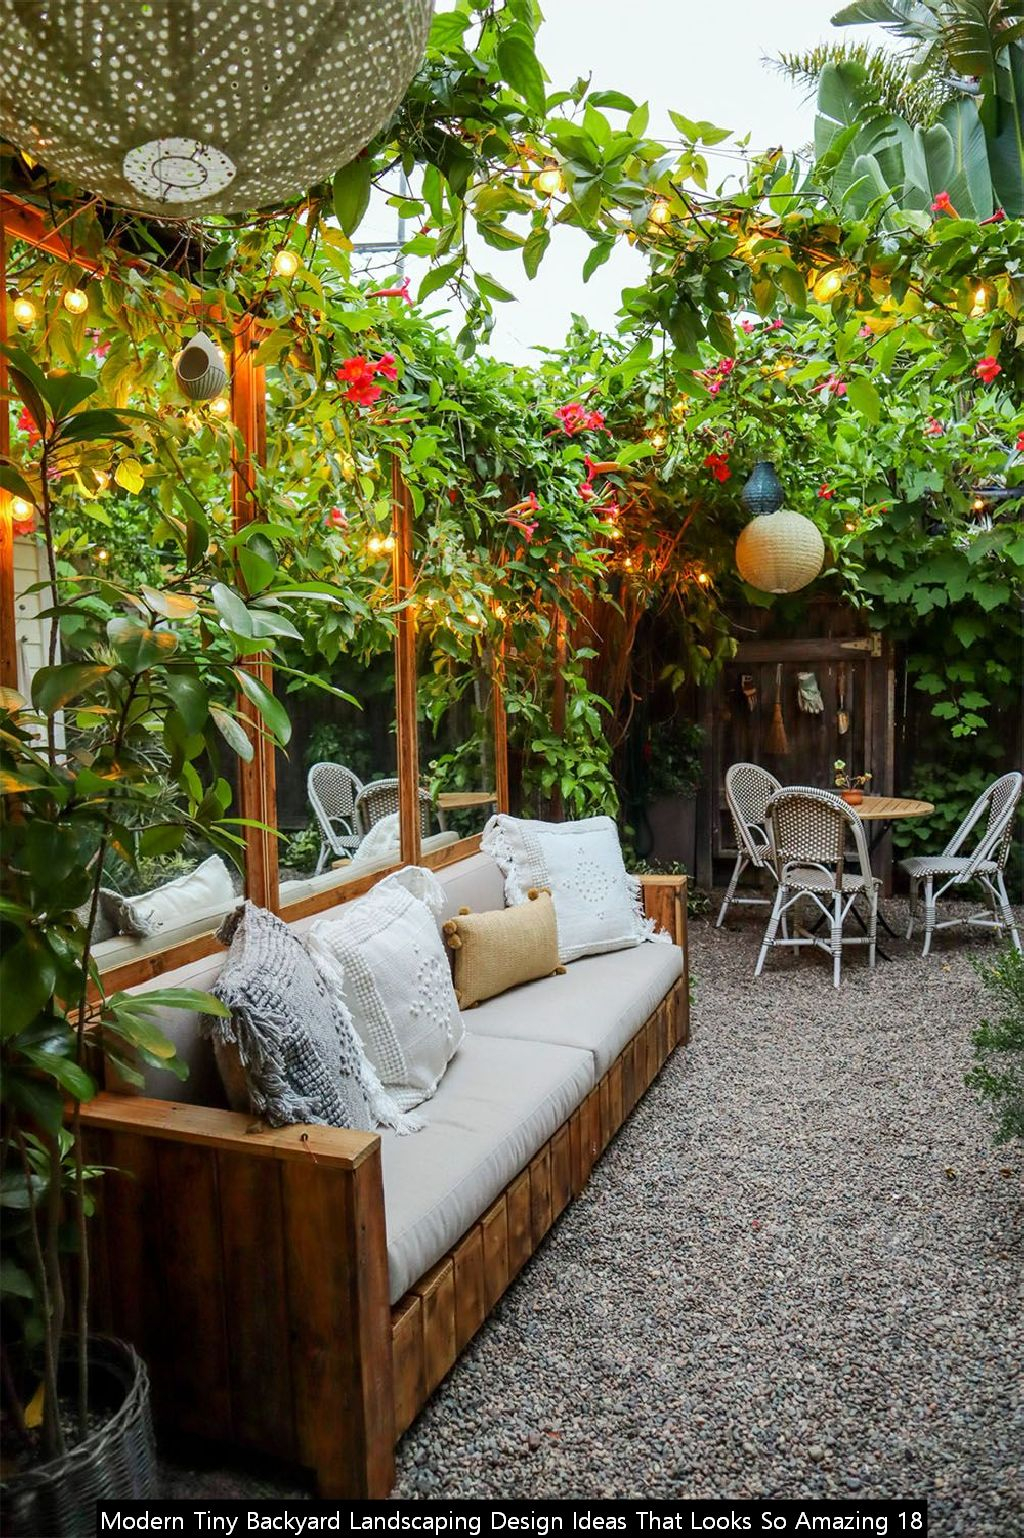 Modern Tiny Backyard Landscaping Design Ideas That Looks So Amazing 18